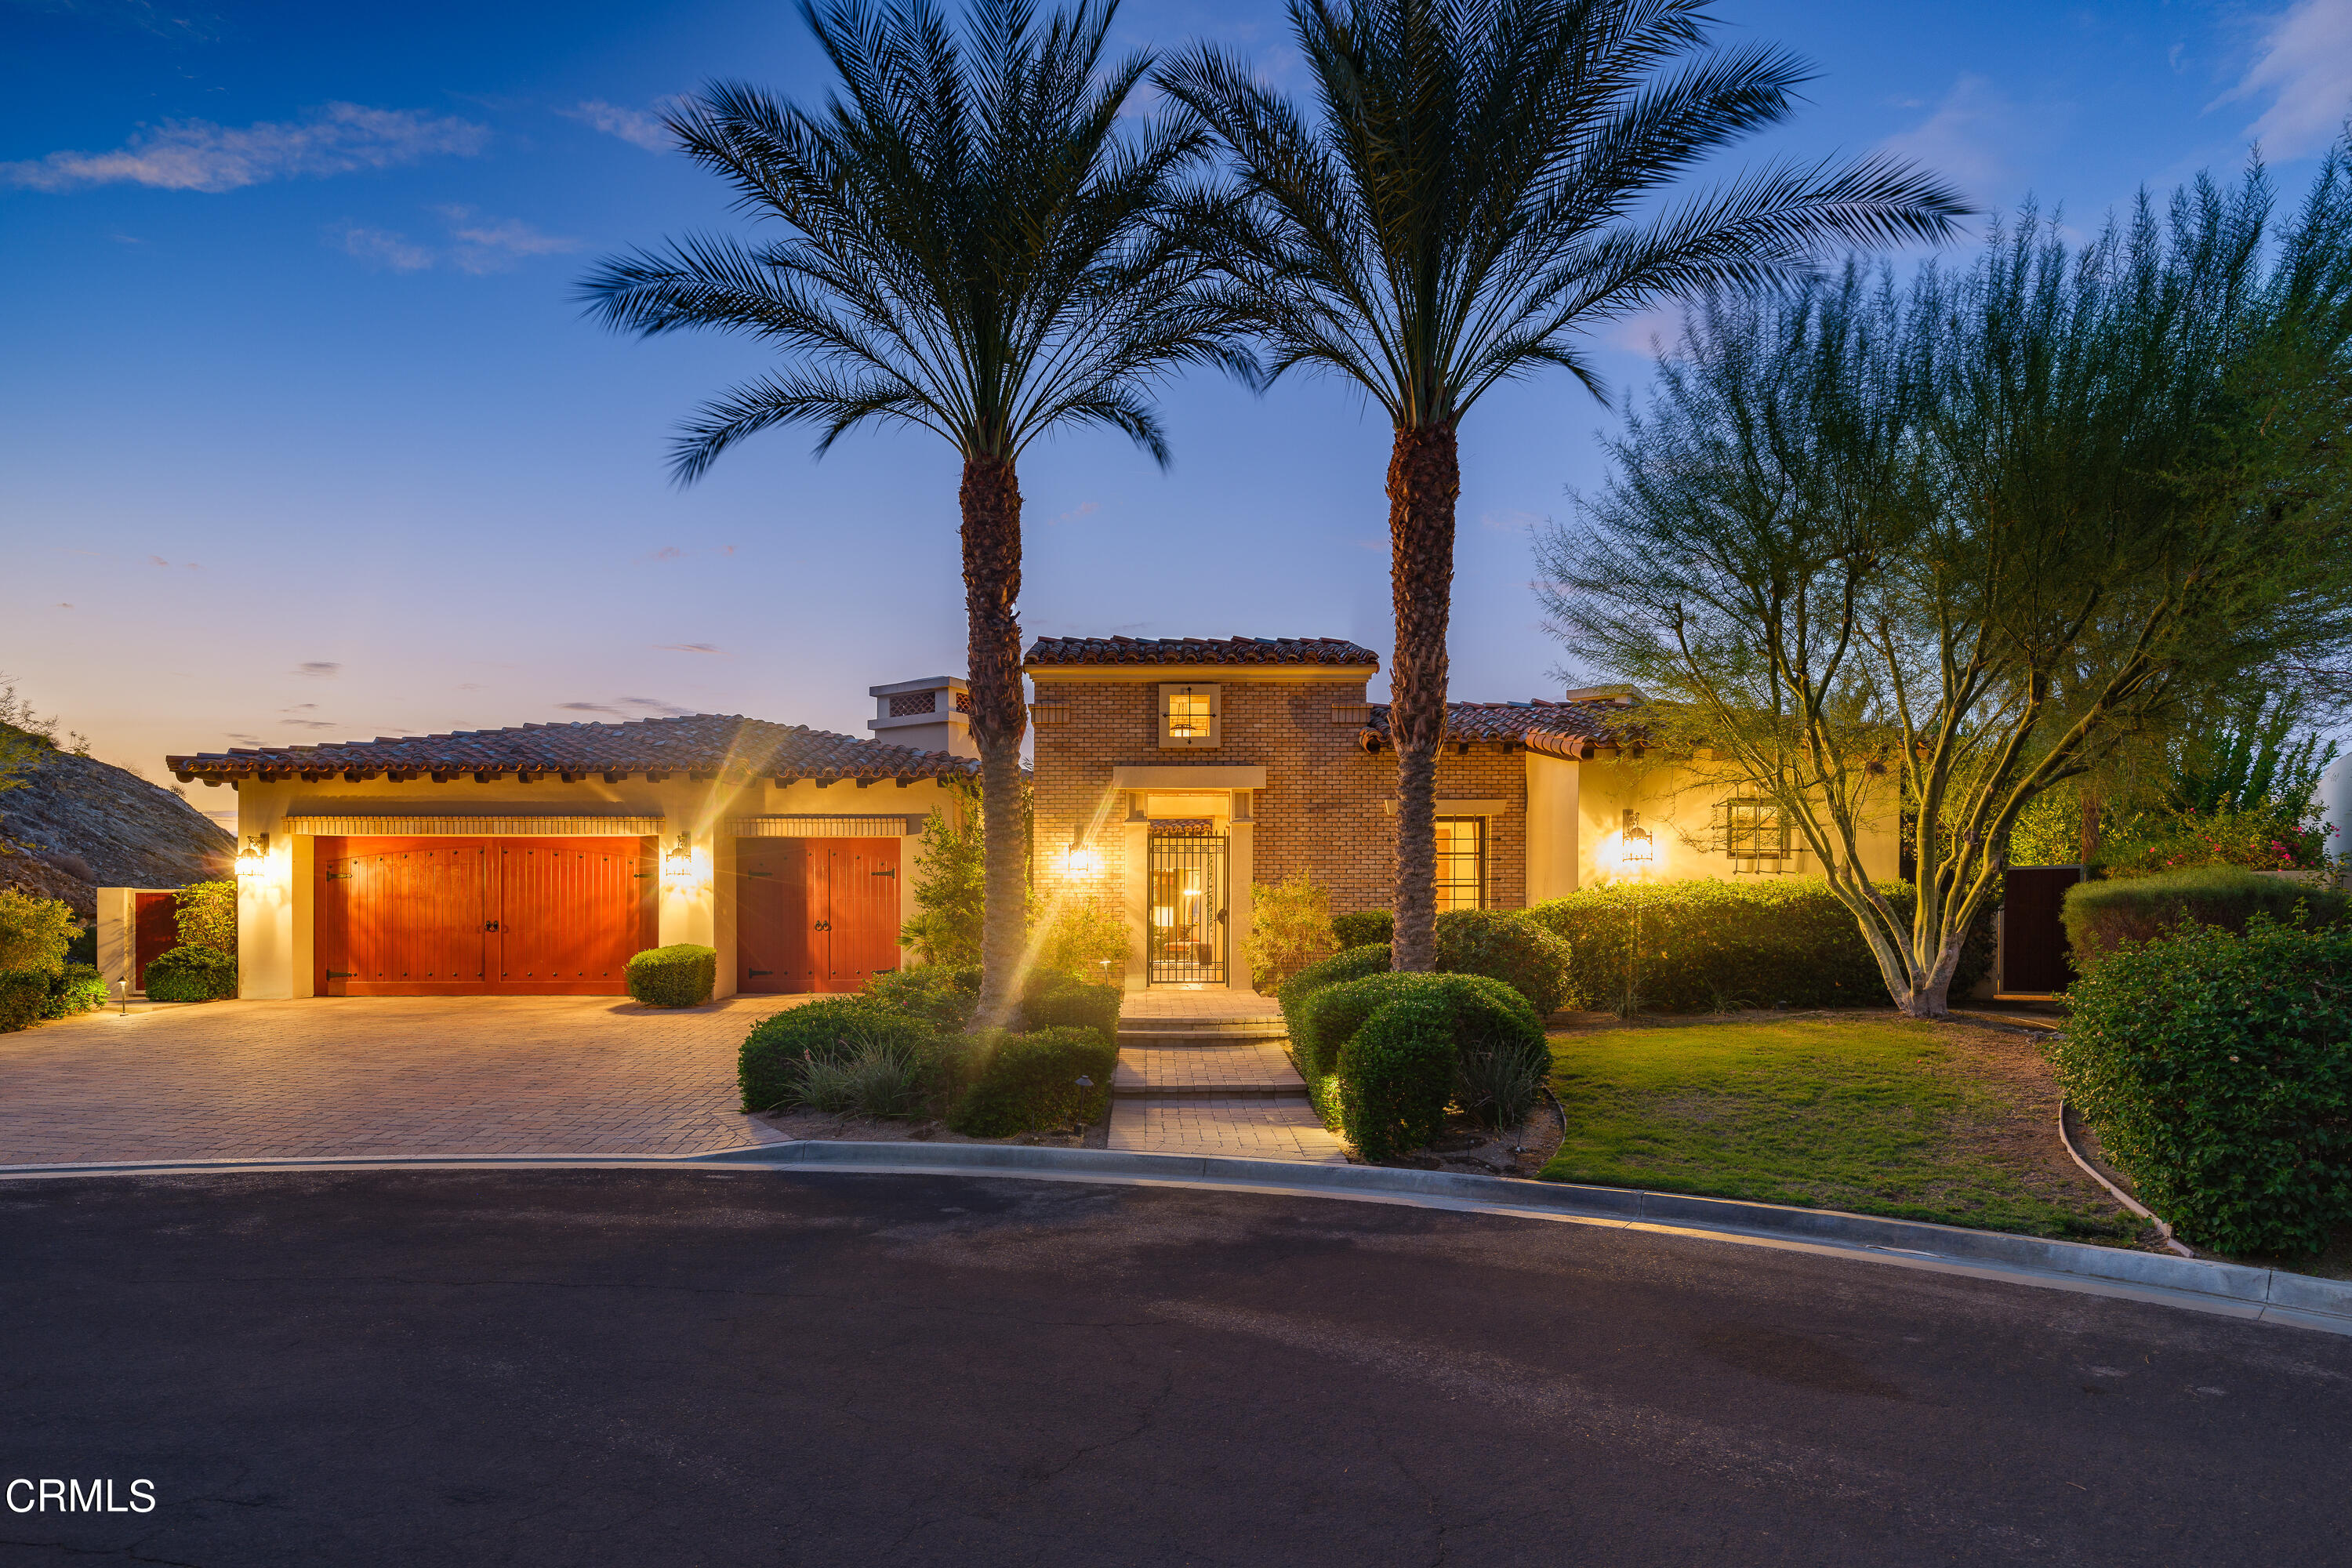 Designed & built with the finest finishes & amenities intended for luxury desert living is this 5 bedroom, 6 bathroom, 6,200 sq ft home in the Mirada Estates gated community in Rancho Mirage. Passing through the front gate, one is struck by the entryway that leads to the casita in front of the home which features a living room, a kitchenette area, a bedroom, & a bathroom. Past the casita is the courtyard that welcomes you with an outdoor fireplace, mini palm trees, vegetation, & a fountain. Passing through the front door, one is awed by the entryway that has stone tile flooring, beamed ceilings, base molding, & a chandelier. The home office has carpet floors, wood beam ceilings, recessed lighting, built-in cabinets, a fireplace, & a door to the courtyard. Entering into the living room one will notice the high vaulted ceilings with wood beams, the wall of glass on both sides of the room, highlighting both the courtyard & the backyard, a grand fireplace, a ceiling fan & opens up to the wet bar & the kitchen. The chef's kitchen showcases granite countertops with a stone tile backsplash, an oversized island with granite countertops & a double-sink, beautiful oversized cabinets with display shelves, pull-out drawers, recessed lighting, an additional sink, a door that leads to the backyard, stainless steel appliances and an eat-in area. The dining room has vaulted wood beamed ceilings, doors to the courtyard, & two built-in display cabinets. The wine room is capable of holding hundreds of wine bottles. On the West end of the home is the home theater, the  laundry room, the home gym, the three car garage, & three additional bedrooms. On the East side of the home is the primary bedroom suite & primary en suite bathroom. The primary bedroom features vaulted wood beamed ceilings, carpet floors, a fireplace, a walk-in closet, & doors that lead to the backyard. The en suite bathroom has a walk-in closet, a toilet room, a separate toilet/bidet room, double sinks with a vanity de